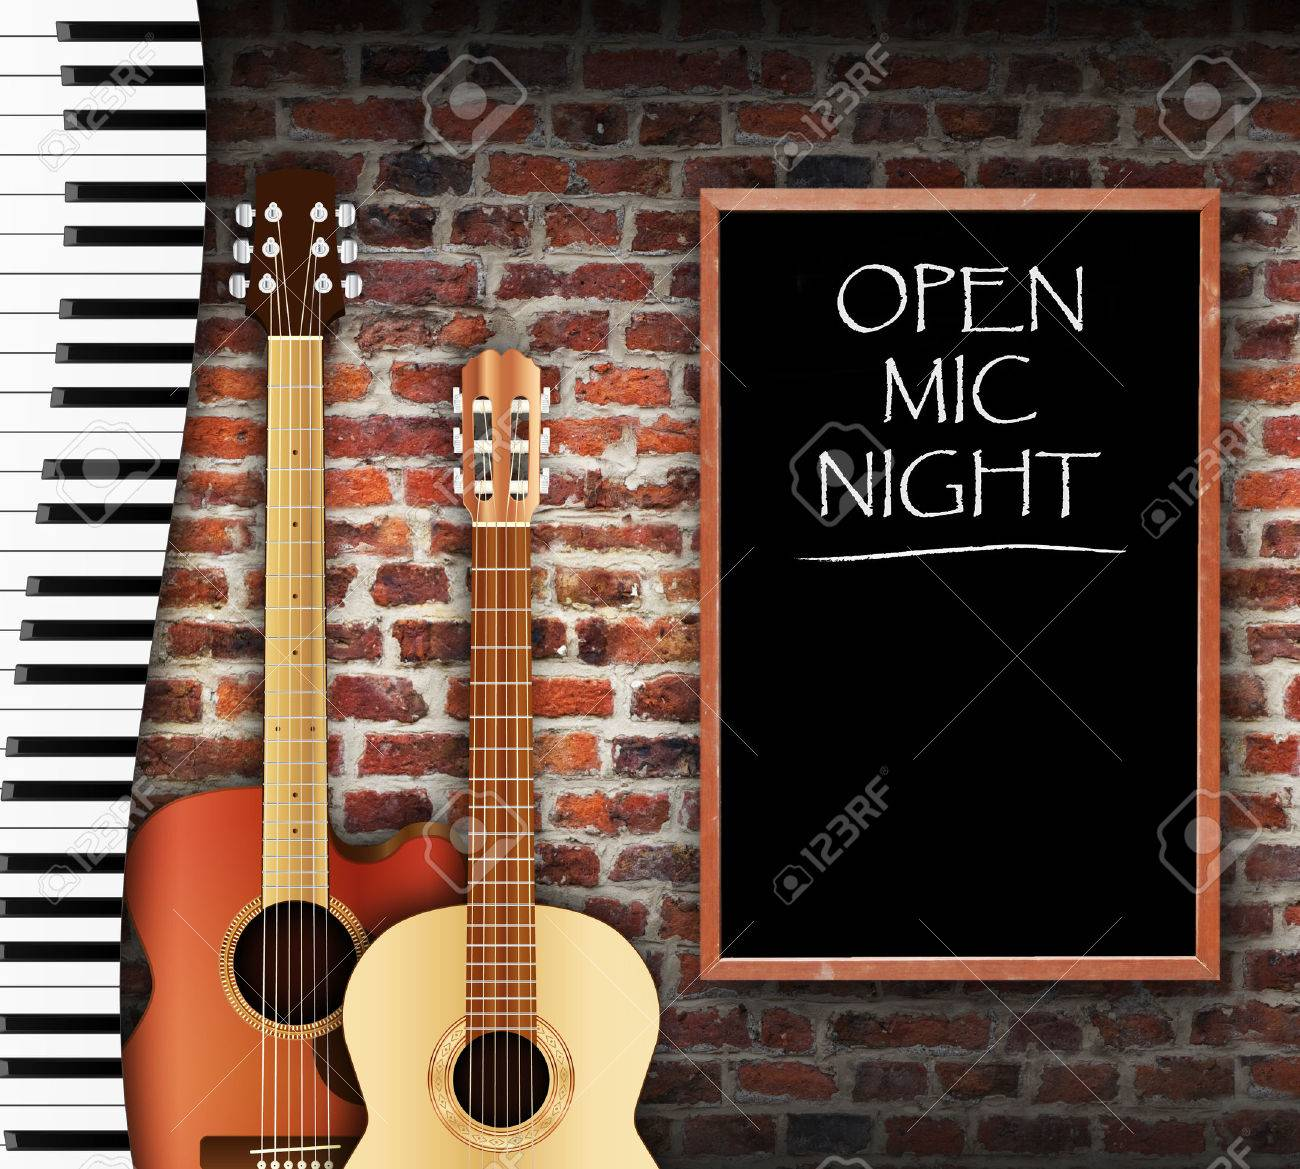 Guitars and keyboard against brick wall background and open mic night written on blackboard - 43134554